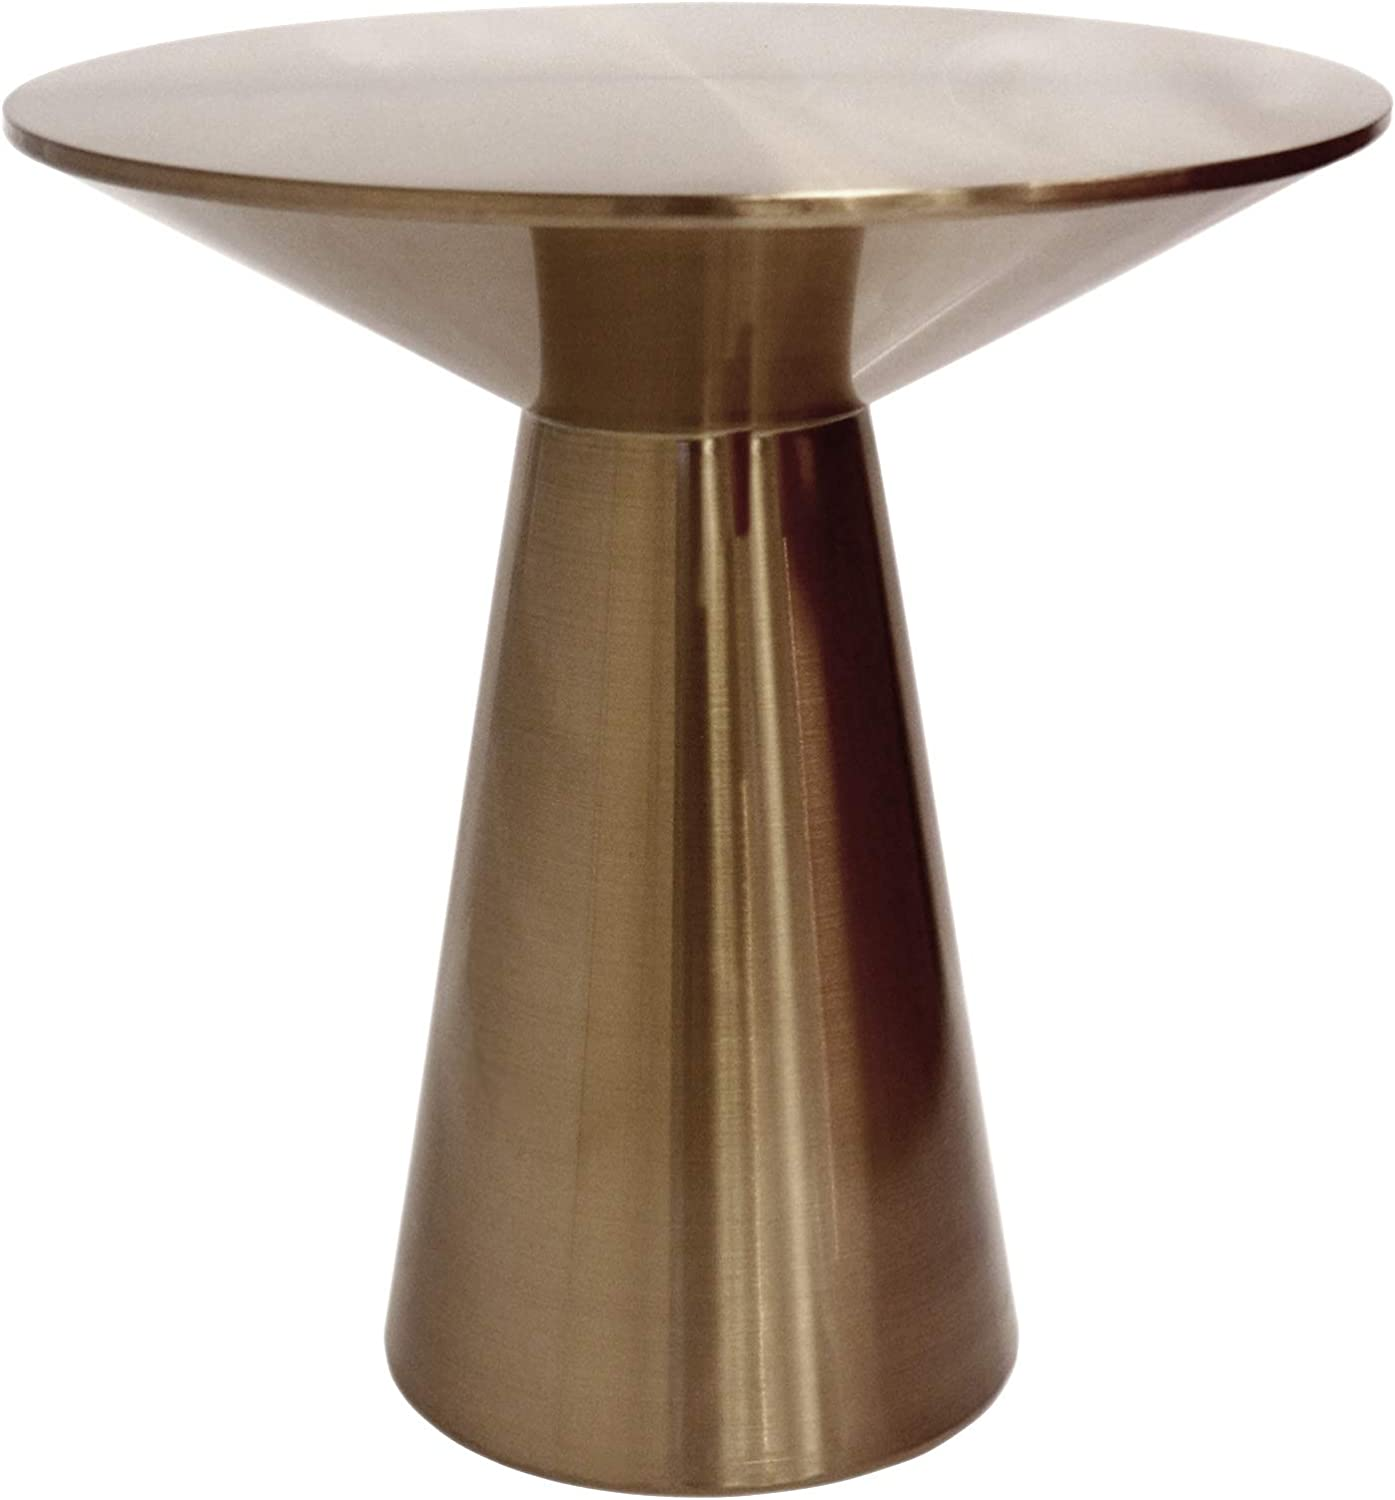 Lorenzo Collection Stainless Steel Side Table